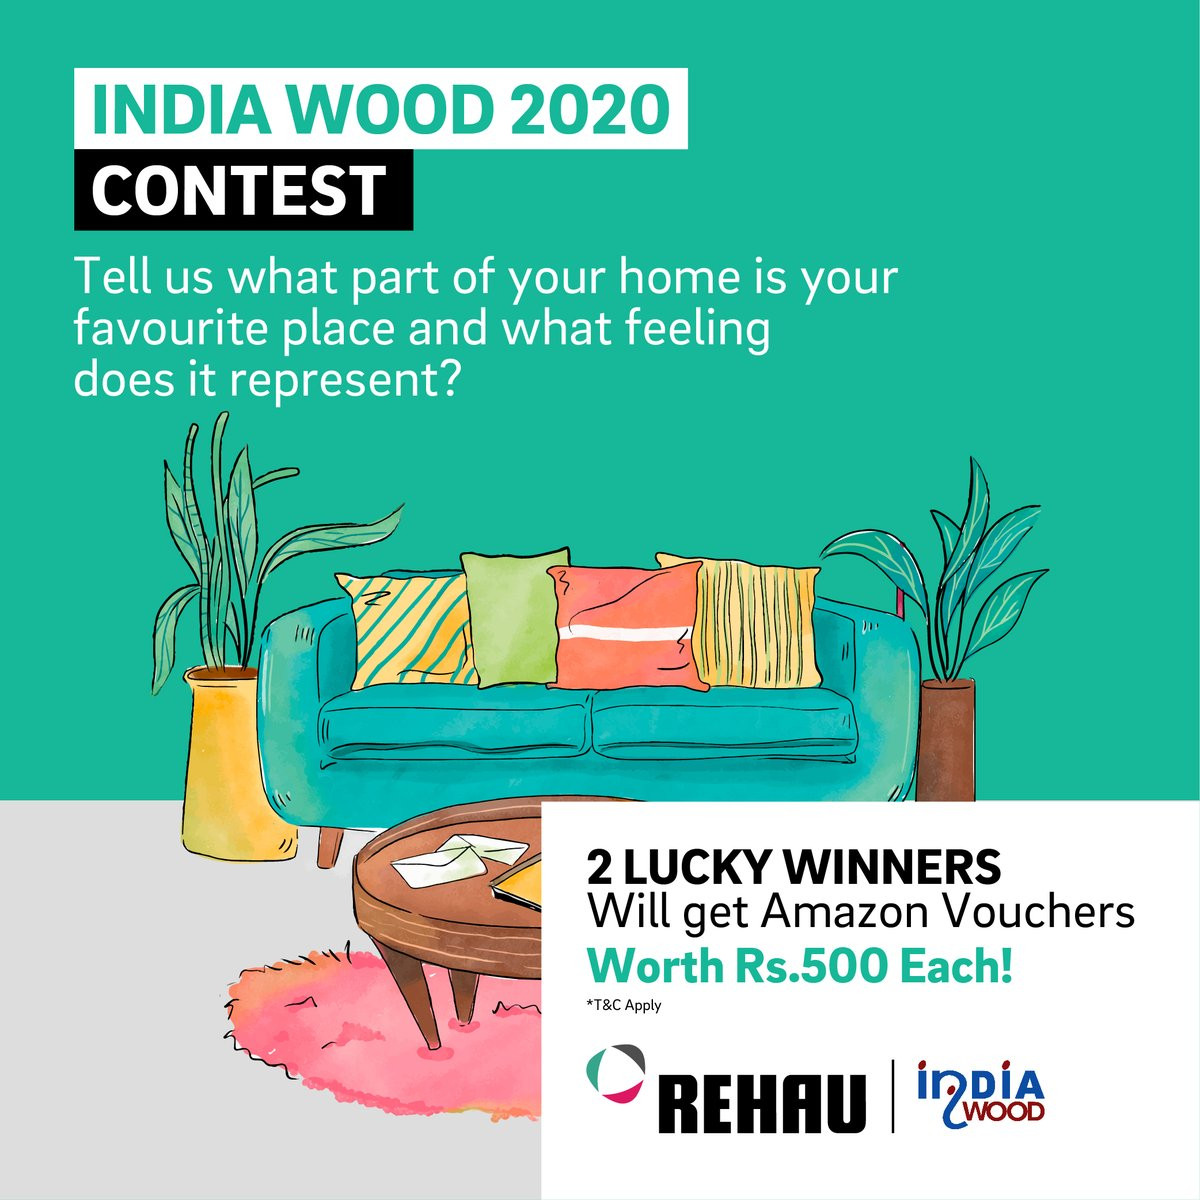 #ContestAlert Tell us what part of your home is your favourite place and what feeling does it represent? 1.Tag a friend 2. Comment the answer  2 lucky winners will get AMAZON VOUCHERS WORTH Rs.500 each!  We're coming to India Wood 2020, at Stall Number H2 B202.  #IndiaWood2020